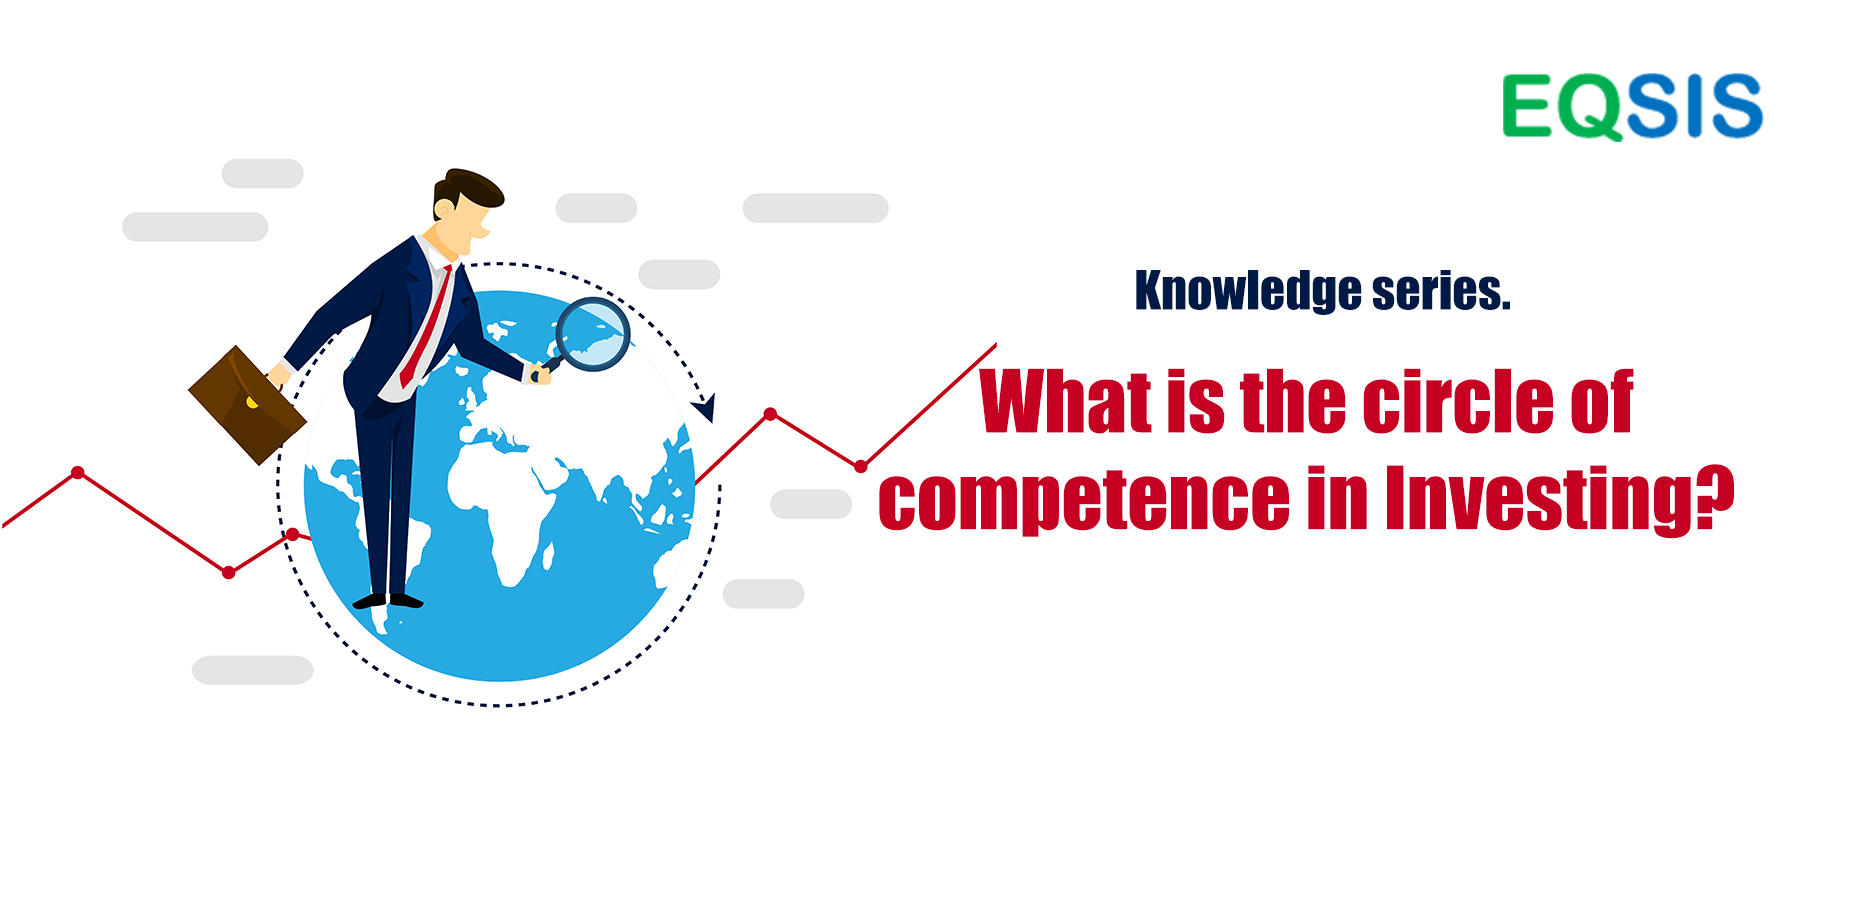 What is circle of competence in investing